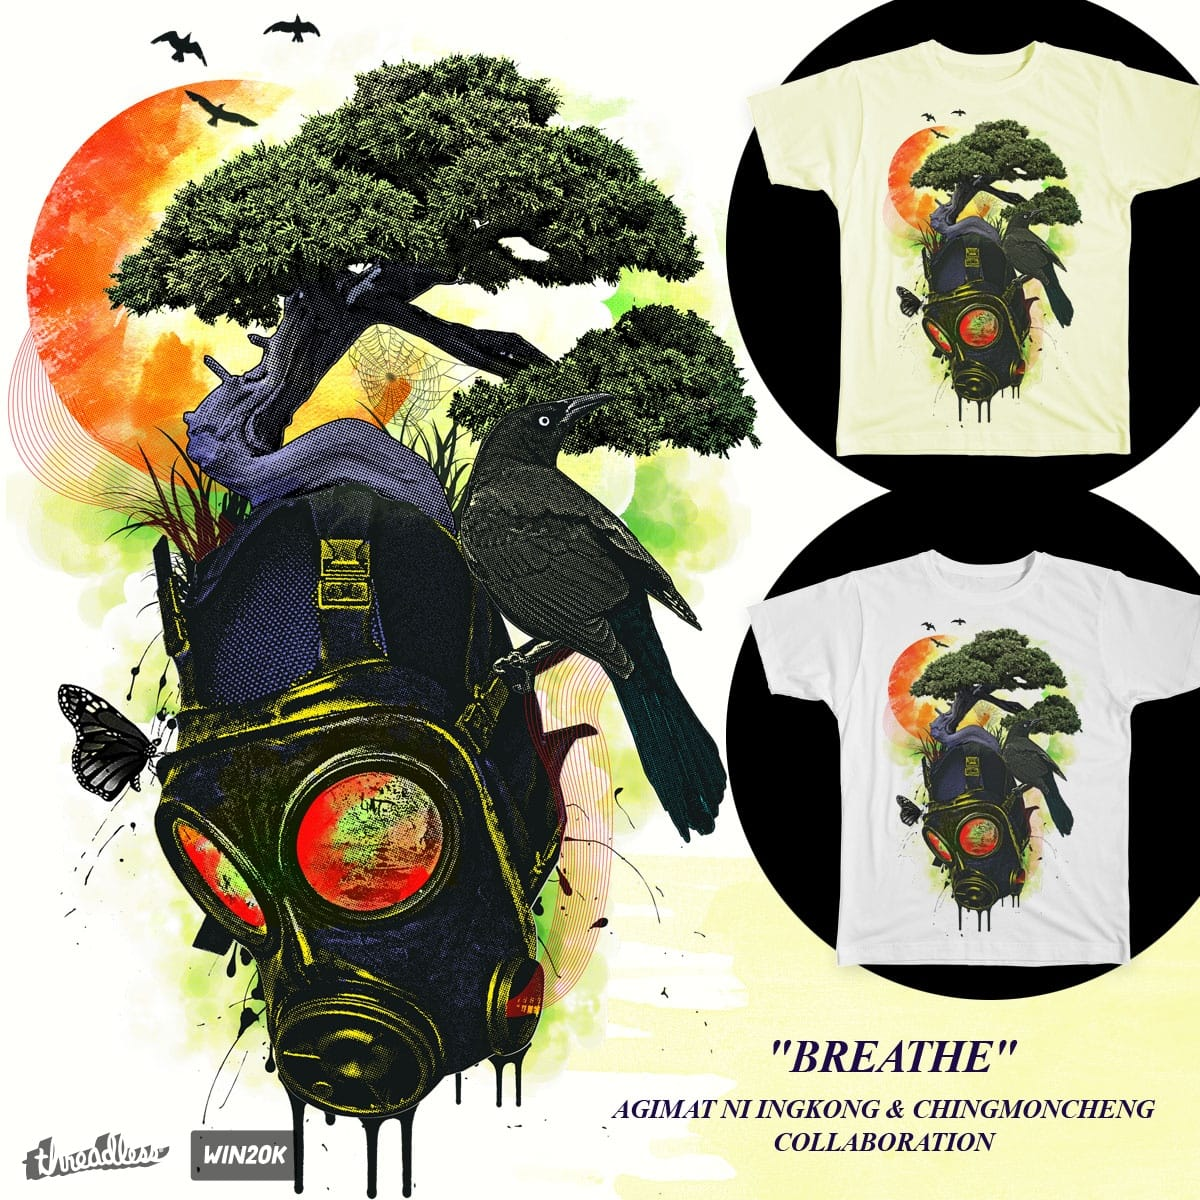 BREATHE by Agimat ni Ingkong and chingmoncheng on Threadless